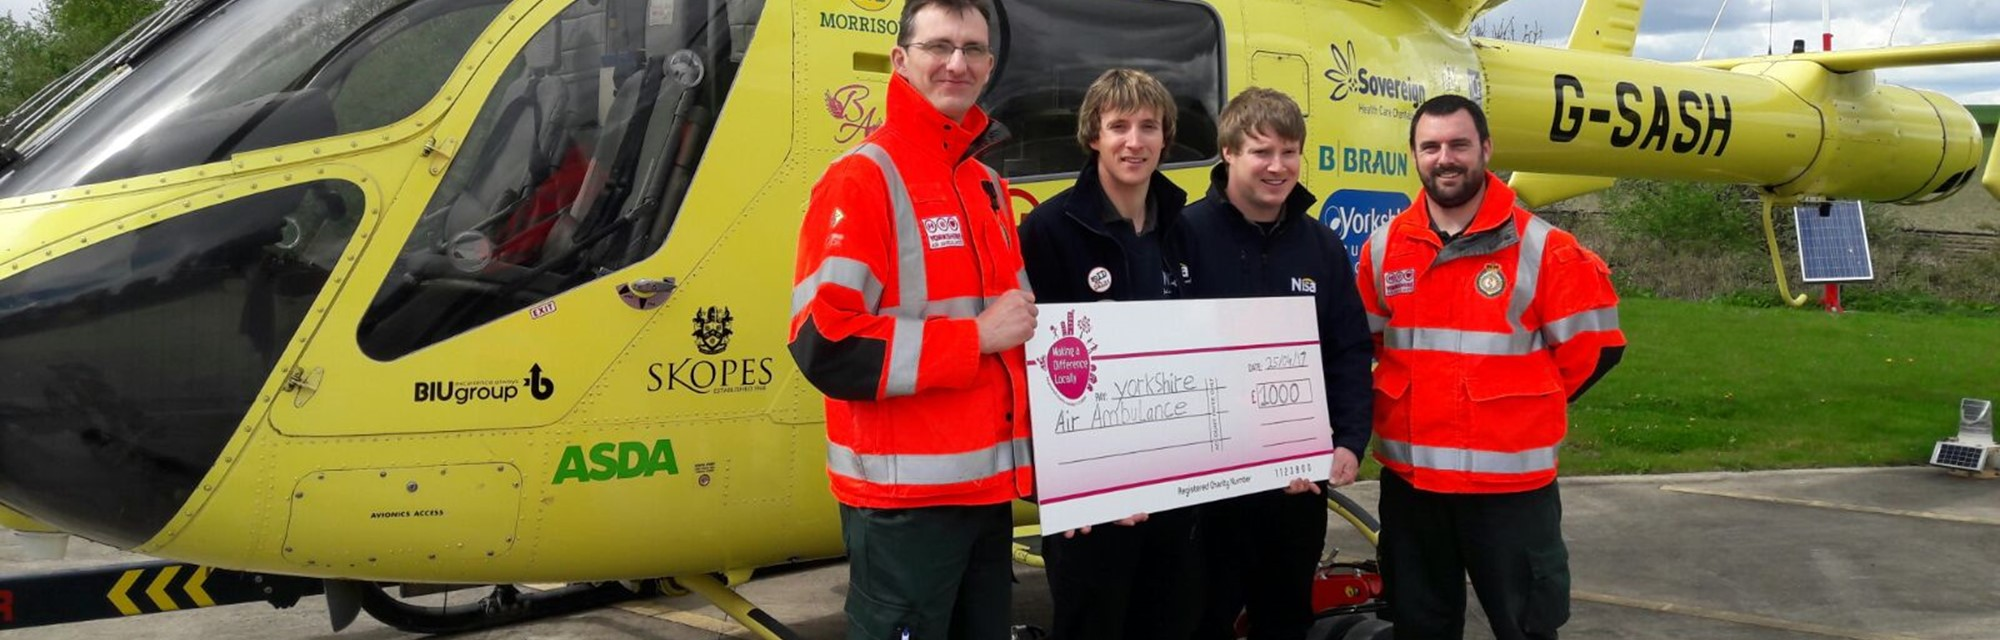 Header - Nisa Local Fitzwilliam Donation To Yorkshire Air Ambulance